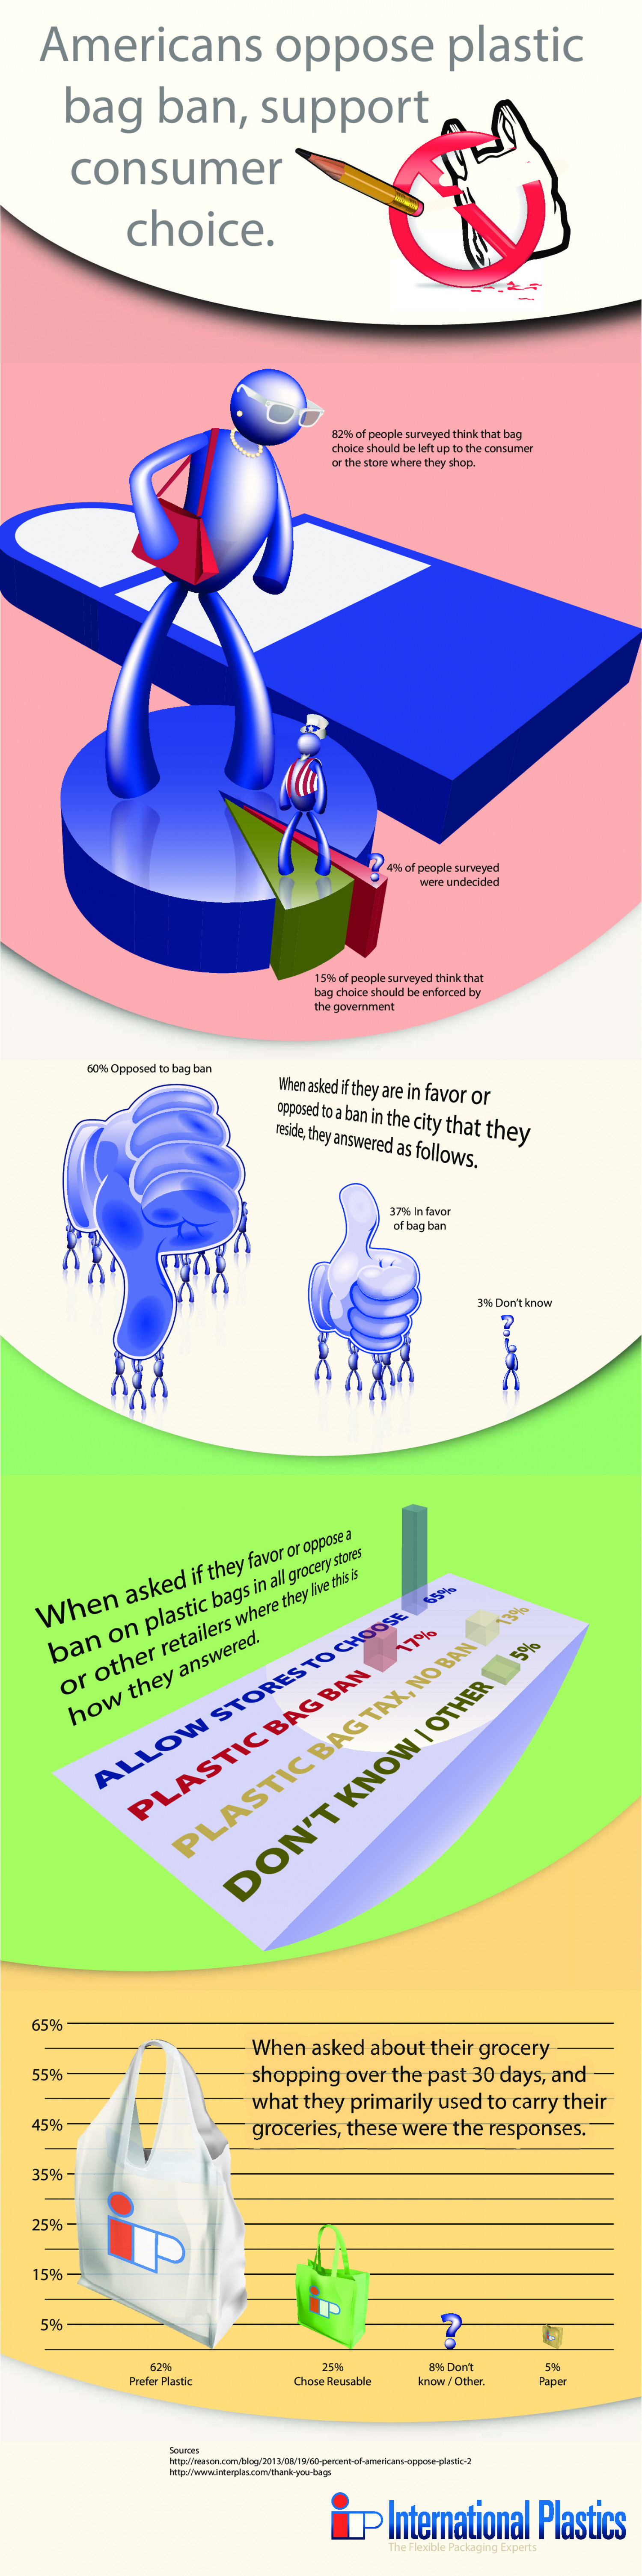 Plastic Bag Ban Opposition Infographic